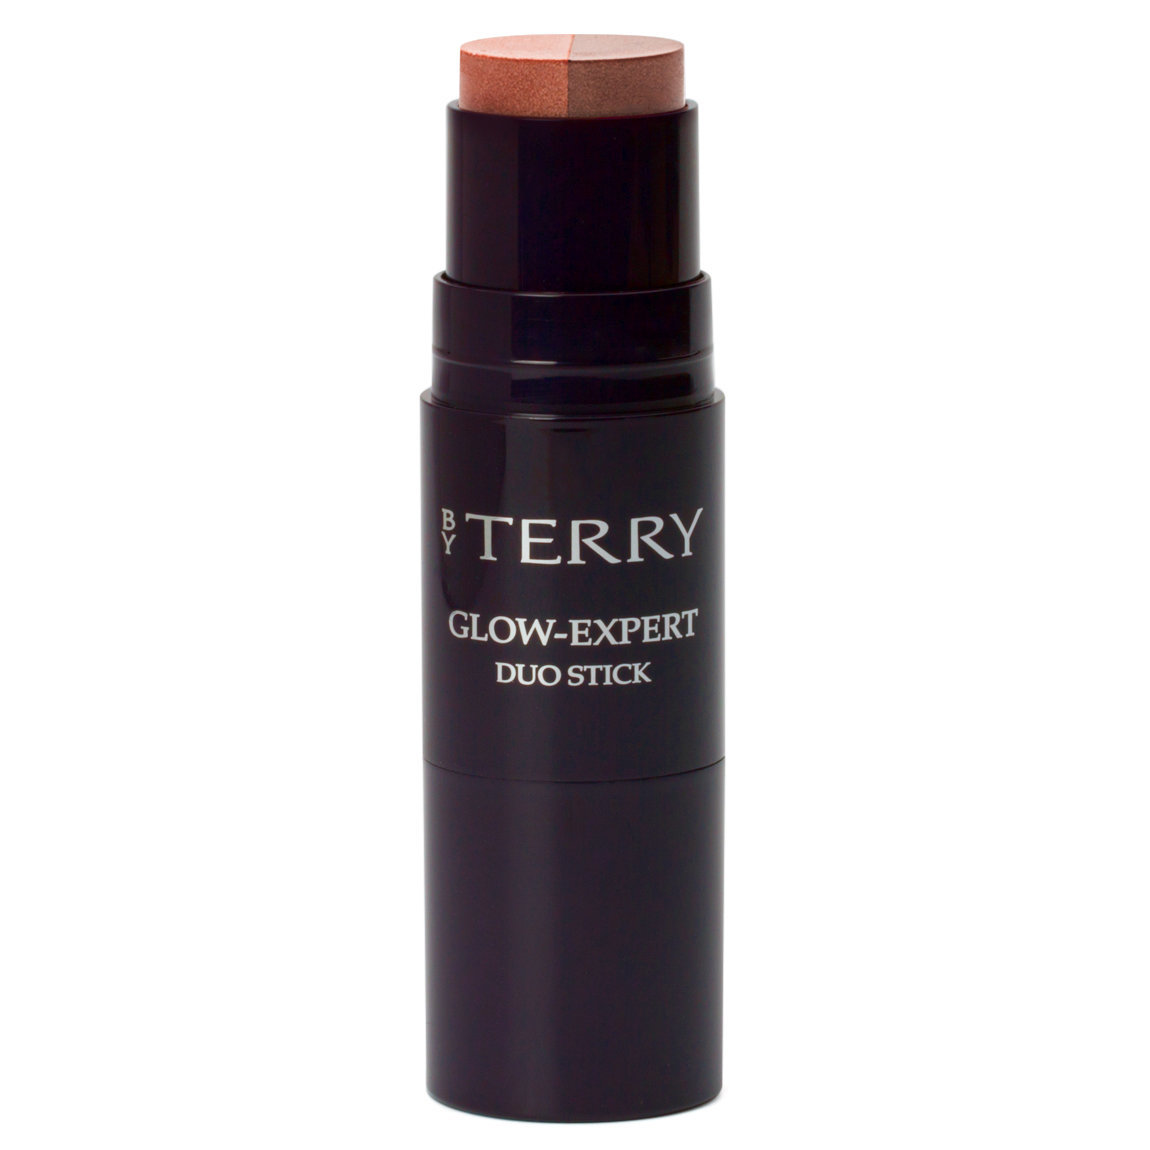 BY TERRY Glow-Expert Duo Stick Copper Coffee alternative view 1.